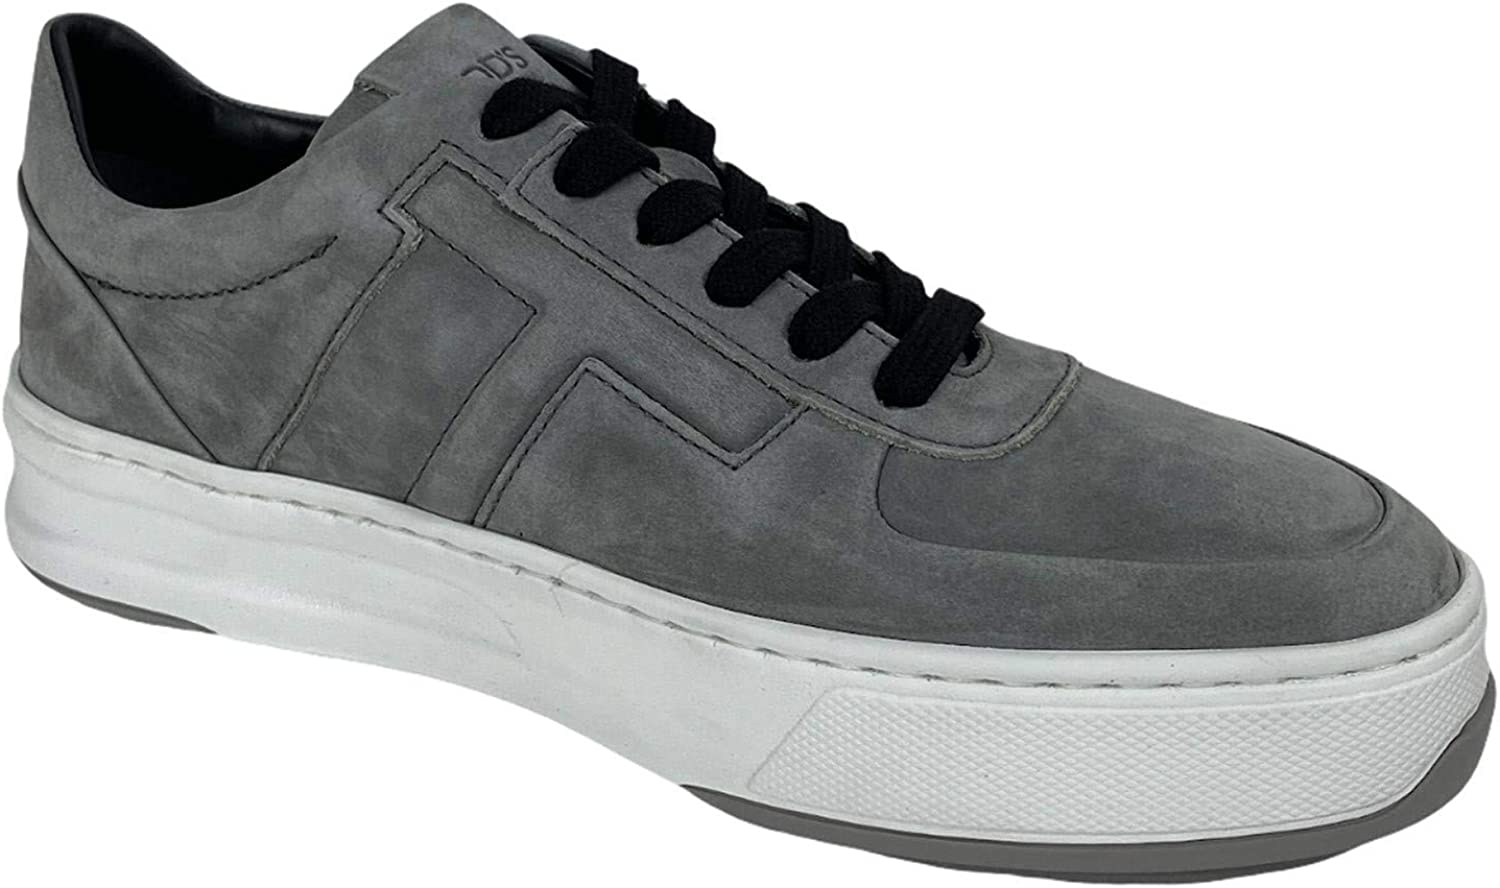 Tod's D01 Sneaker Uomo T laterale Grey Nubuck Leather Shoe Man Grigio